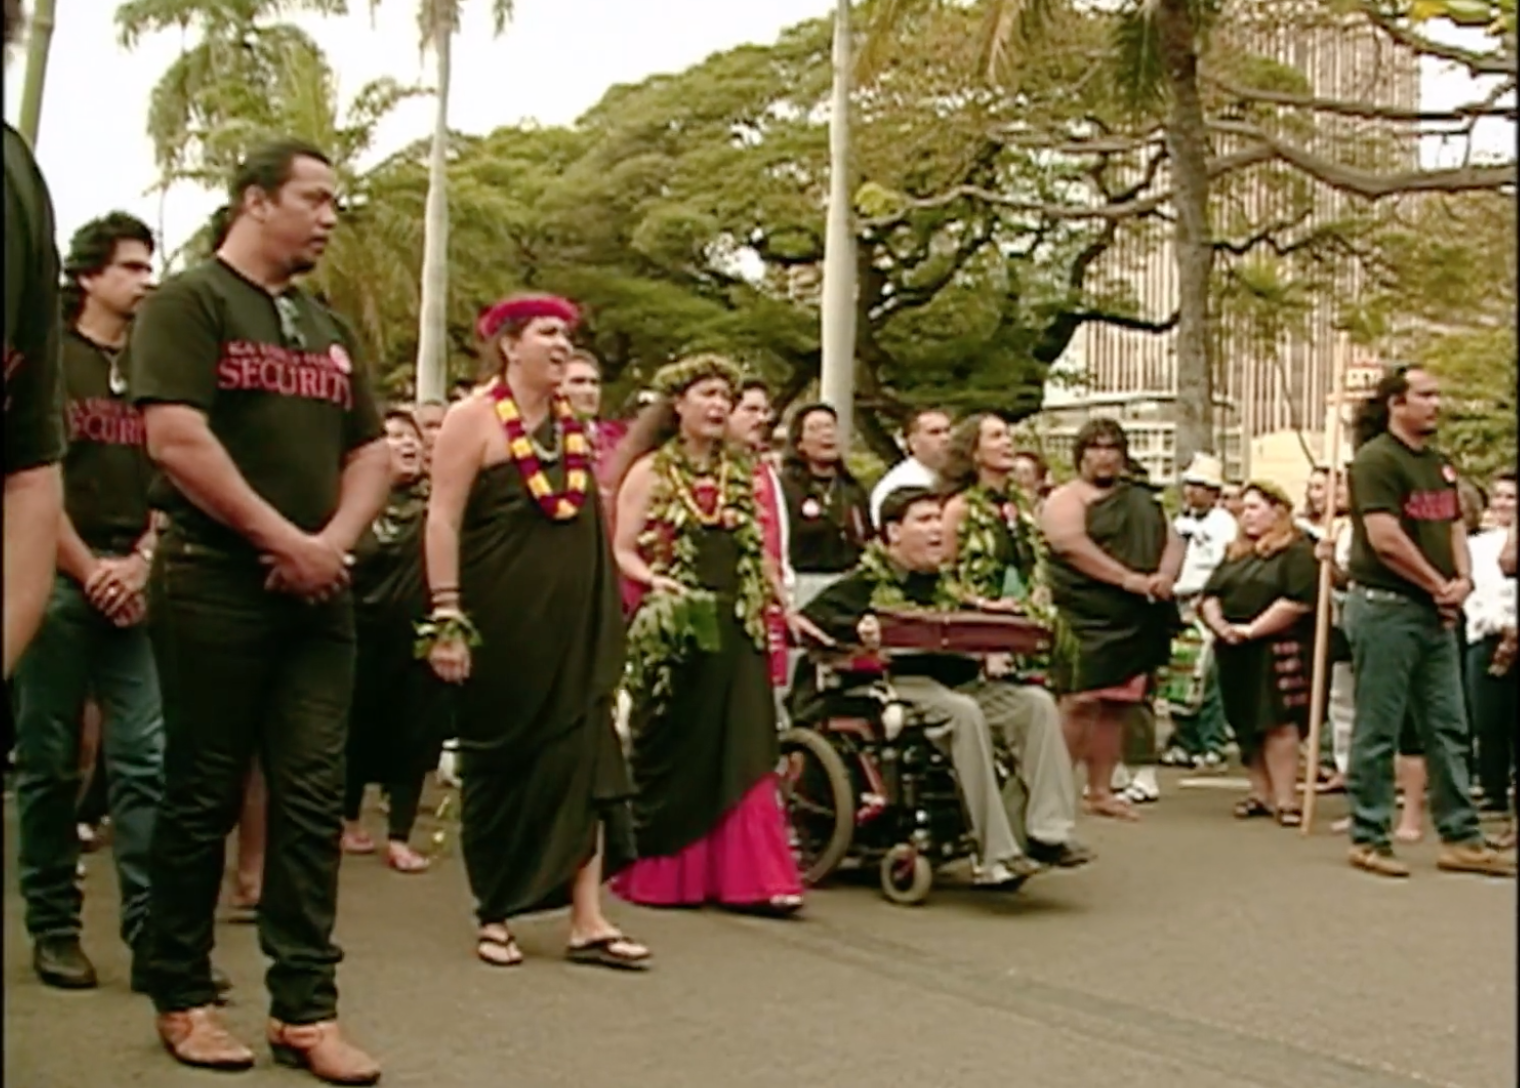 A group of activists march in Honolulu, lead by Kanalu Young.